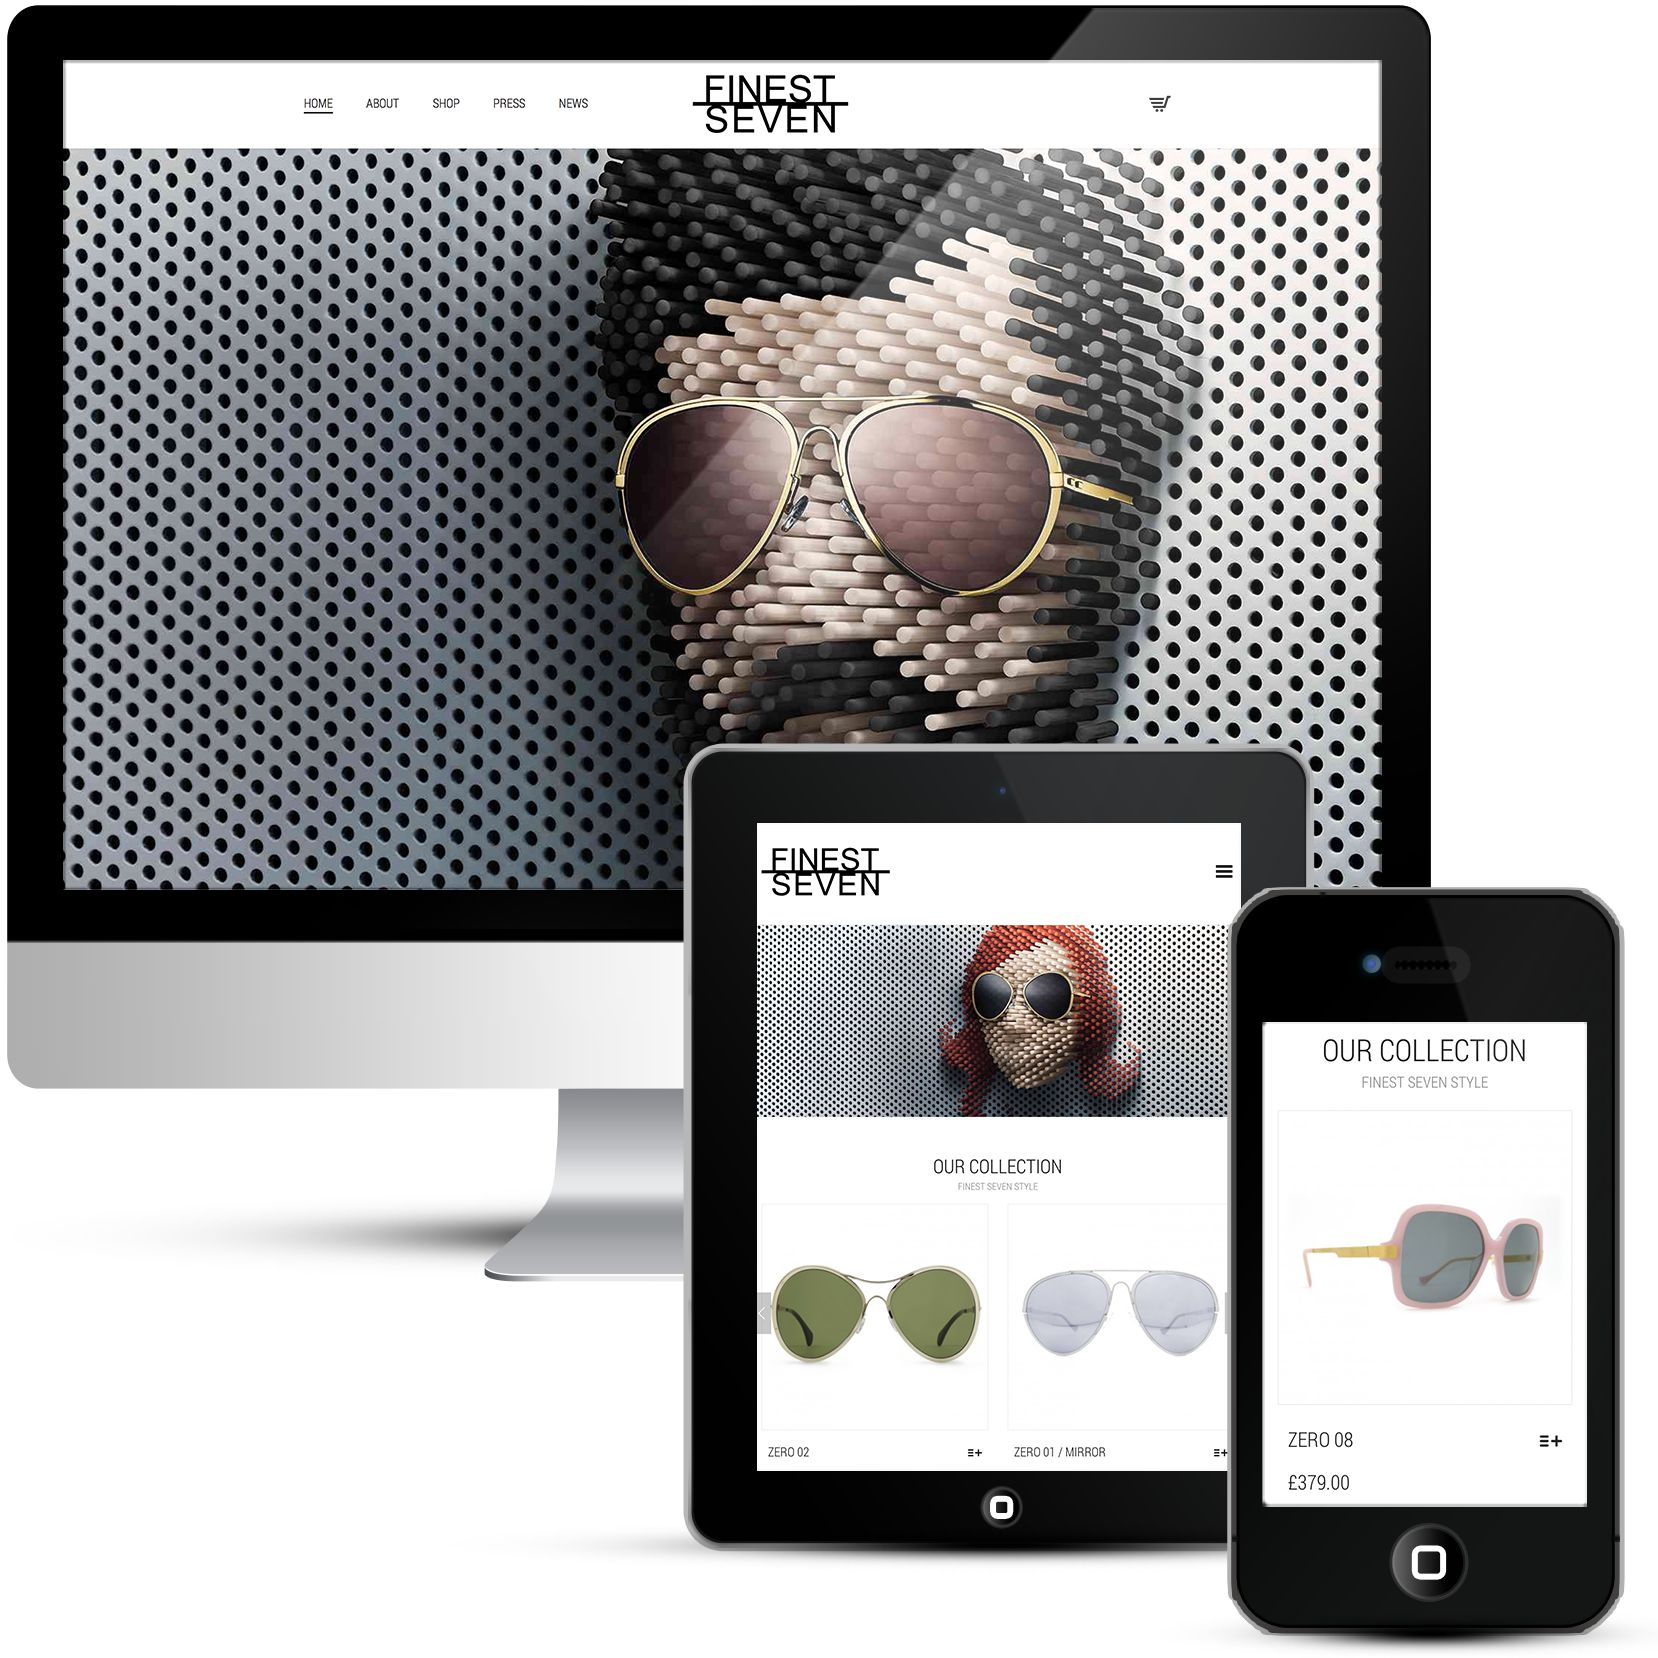 Finest Seven is a beautiful eCommerce site